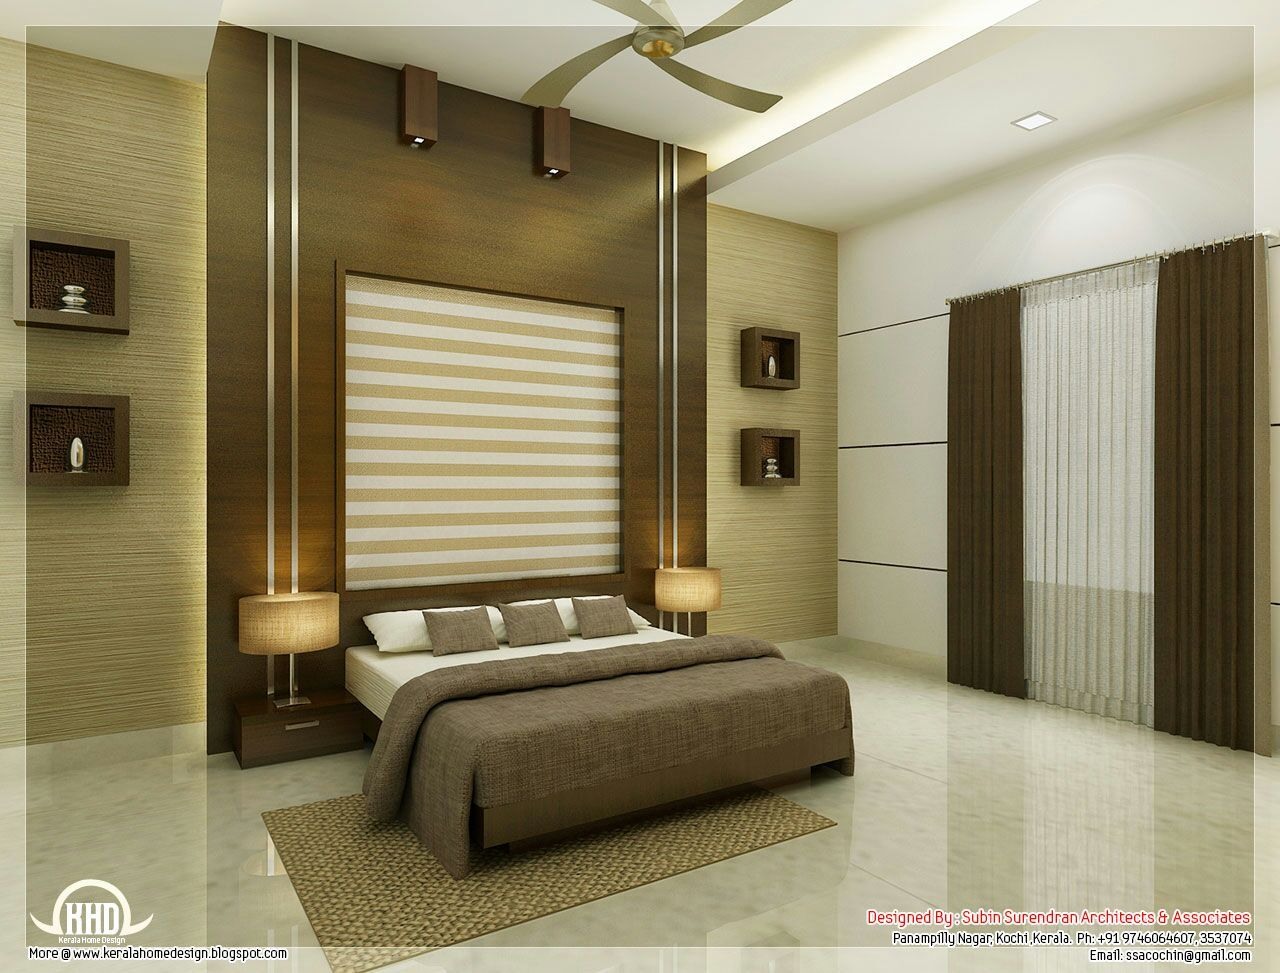 New Interior Design Of Bedroom Custom Globaldecoratorspanels Has Great Flexibility And Adaptability Inspiration